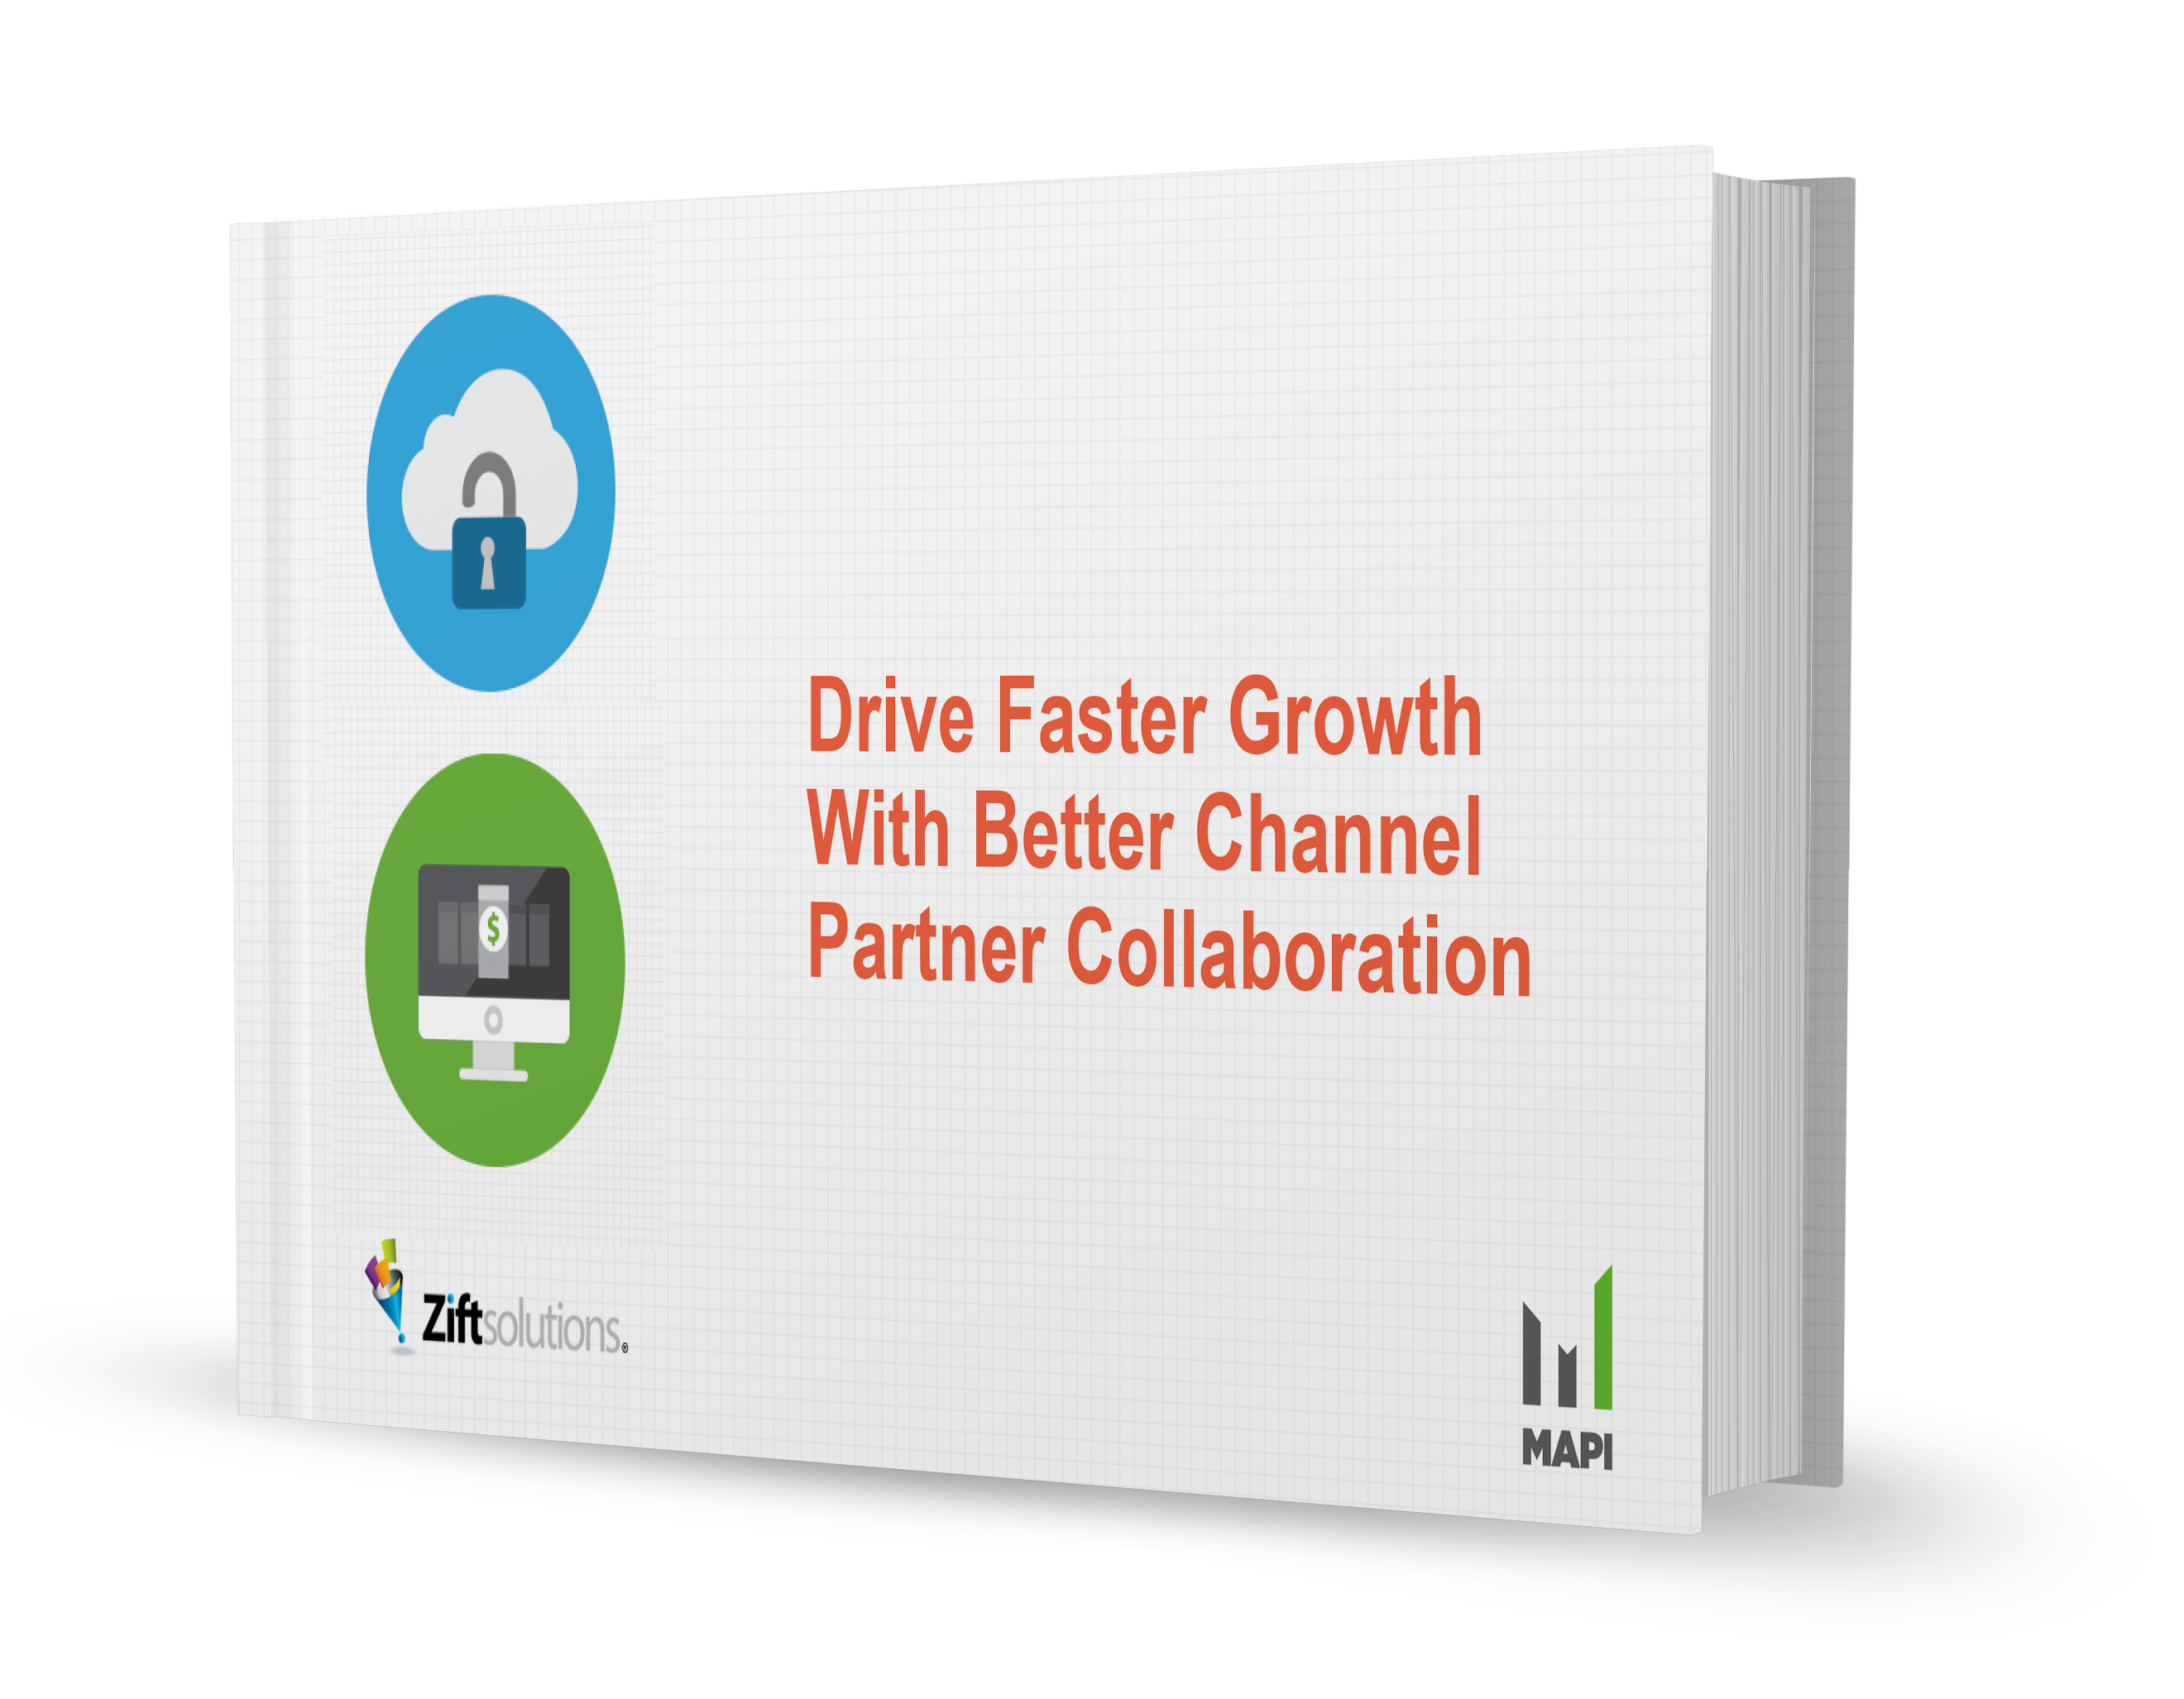 Manufacturers Collaborating with Channel Partners to Drive Faster Growth